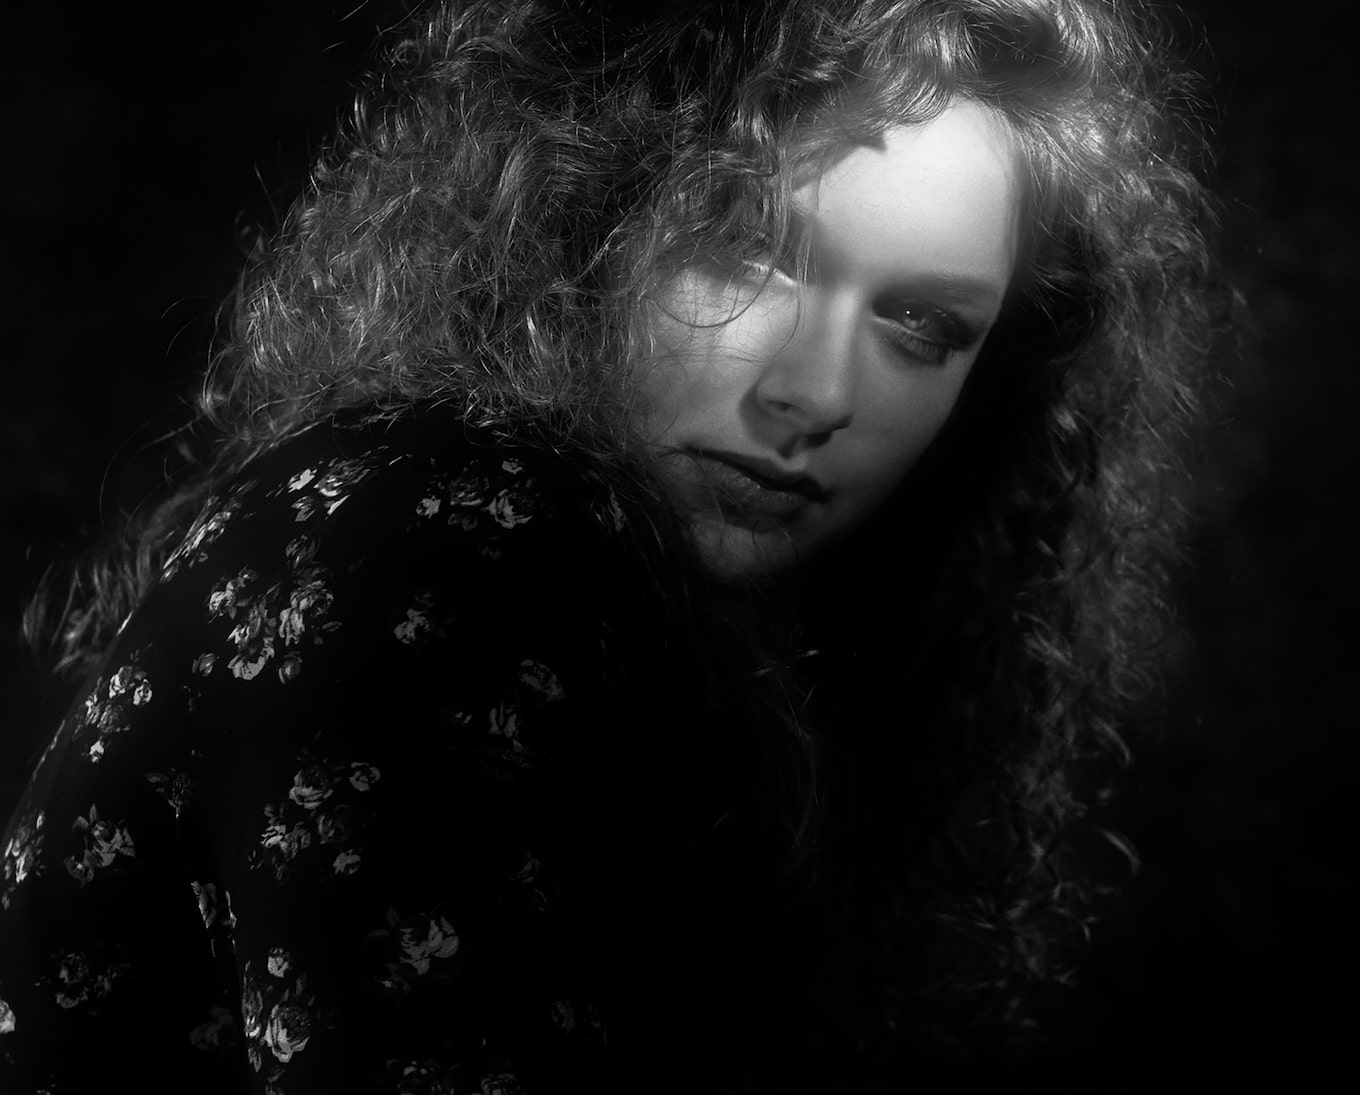 Frank-Doorhof-sony-alpha-7RII-film-noir-type-portrait-of-model-with-curly-hair